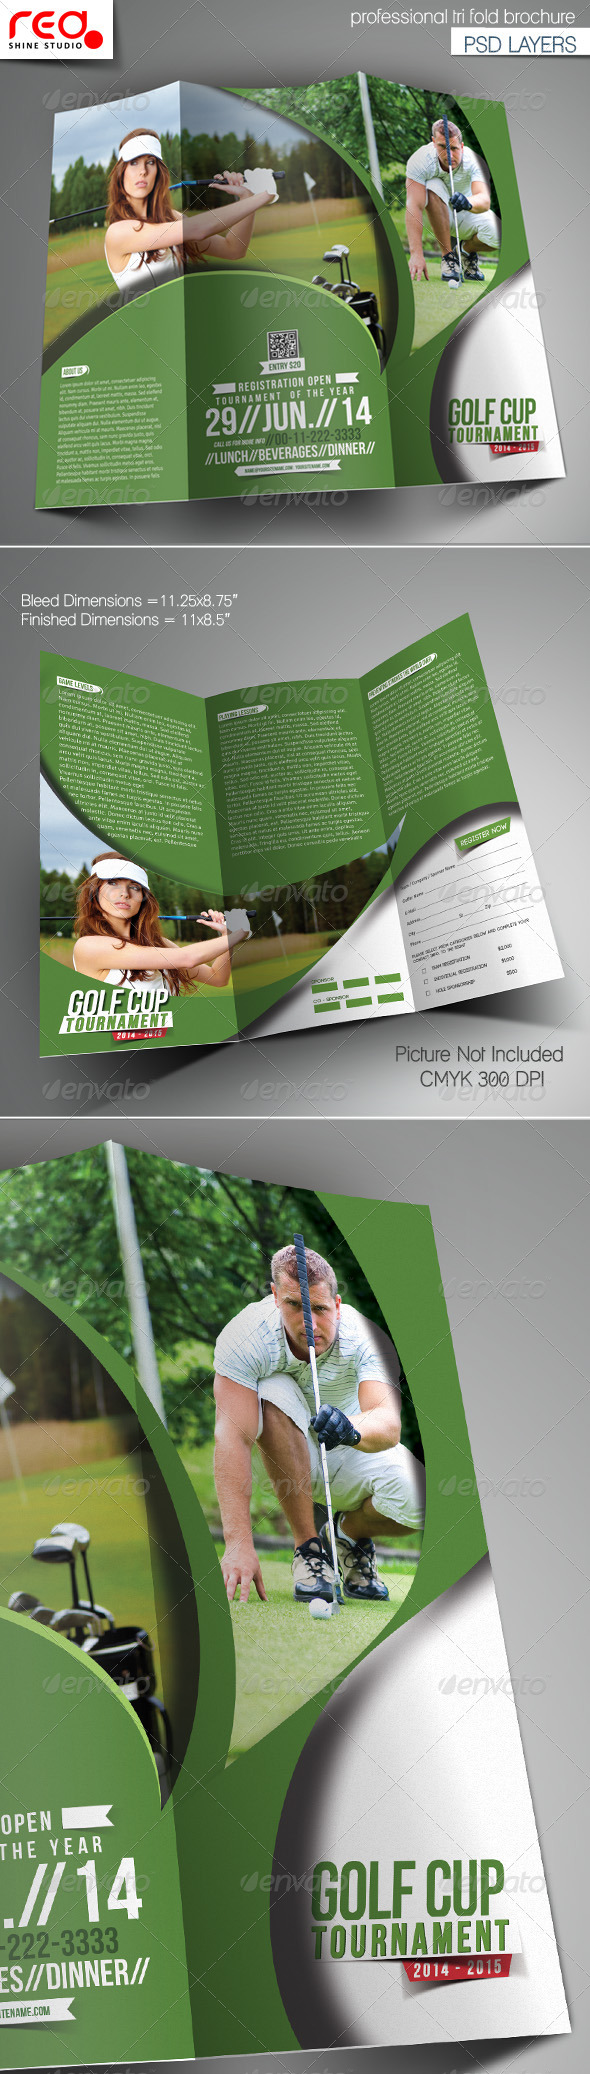 GraphicRiver Golf Cup Tournament Trifold Brochure Template 7489002